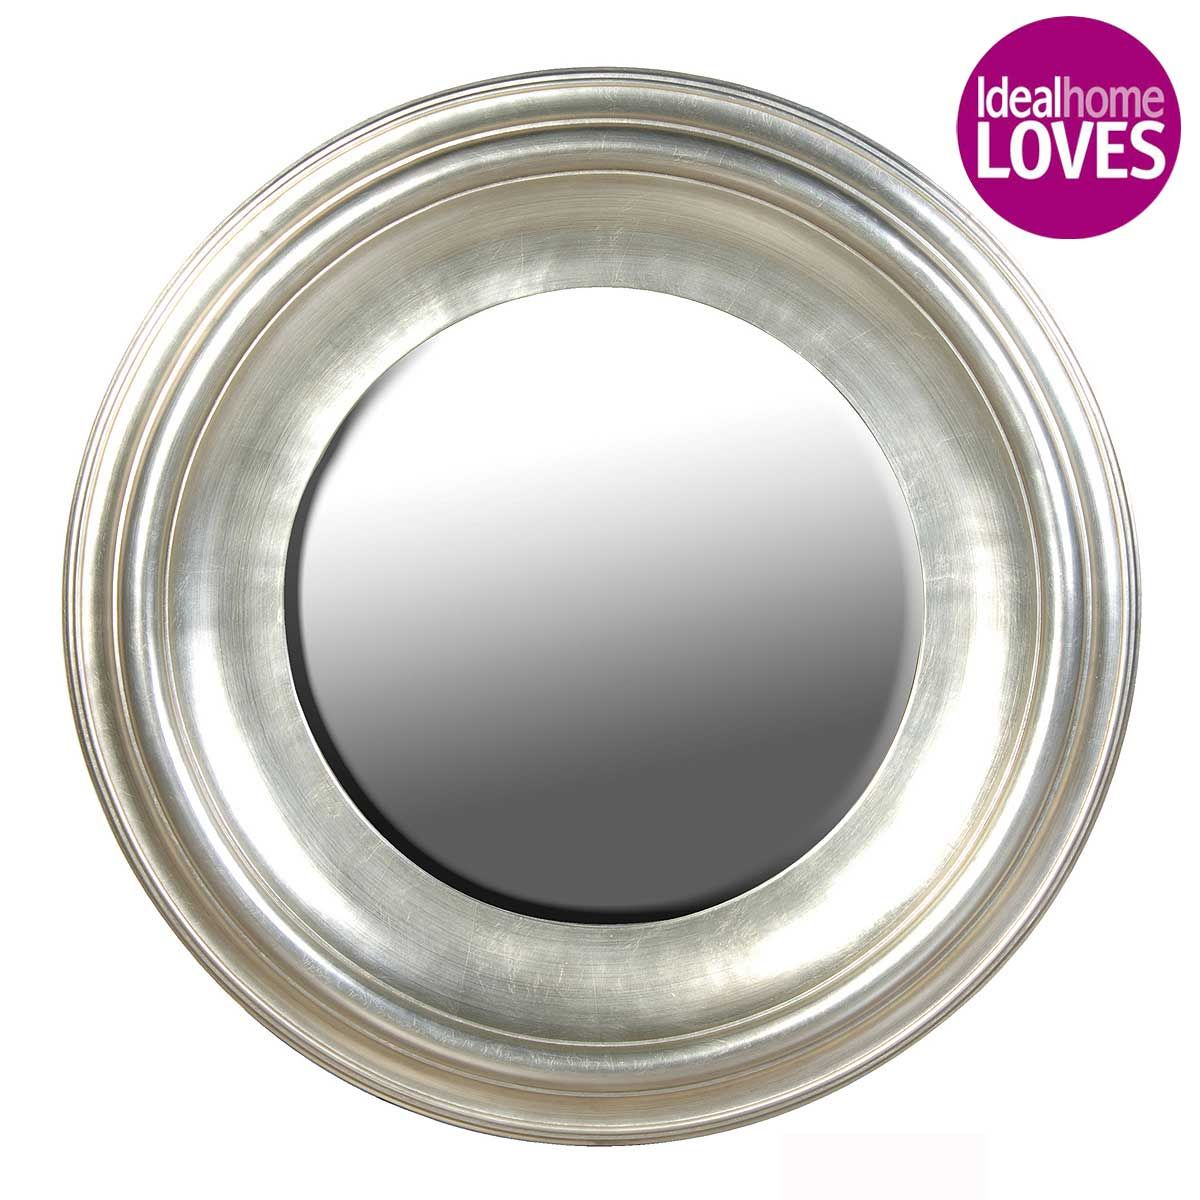 Silver wall mirrors uk gallery home wall decoration ideas small wall mirrors uk images home wall decoration ideas small wall mirrors uk amipublicfo gallery amipublicfo Images